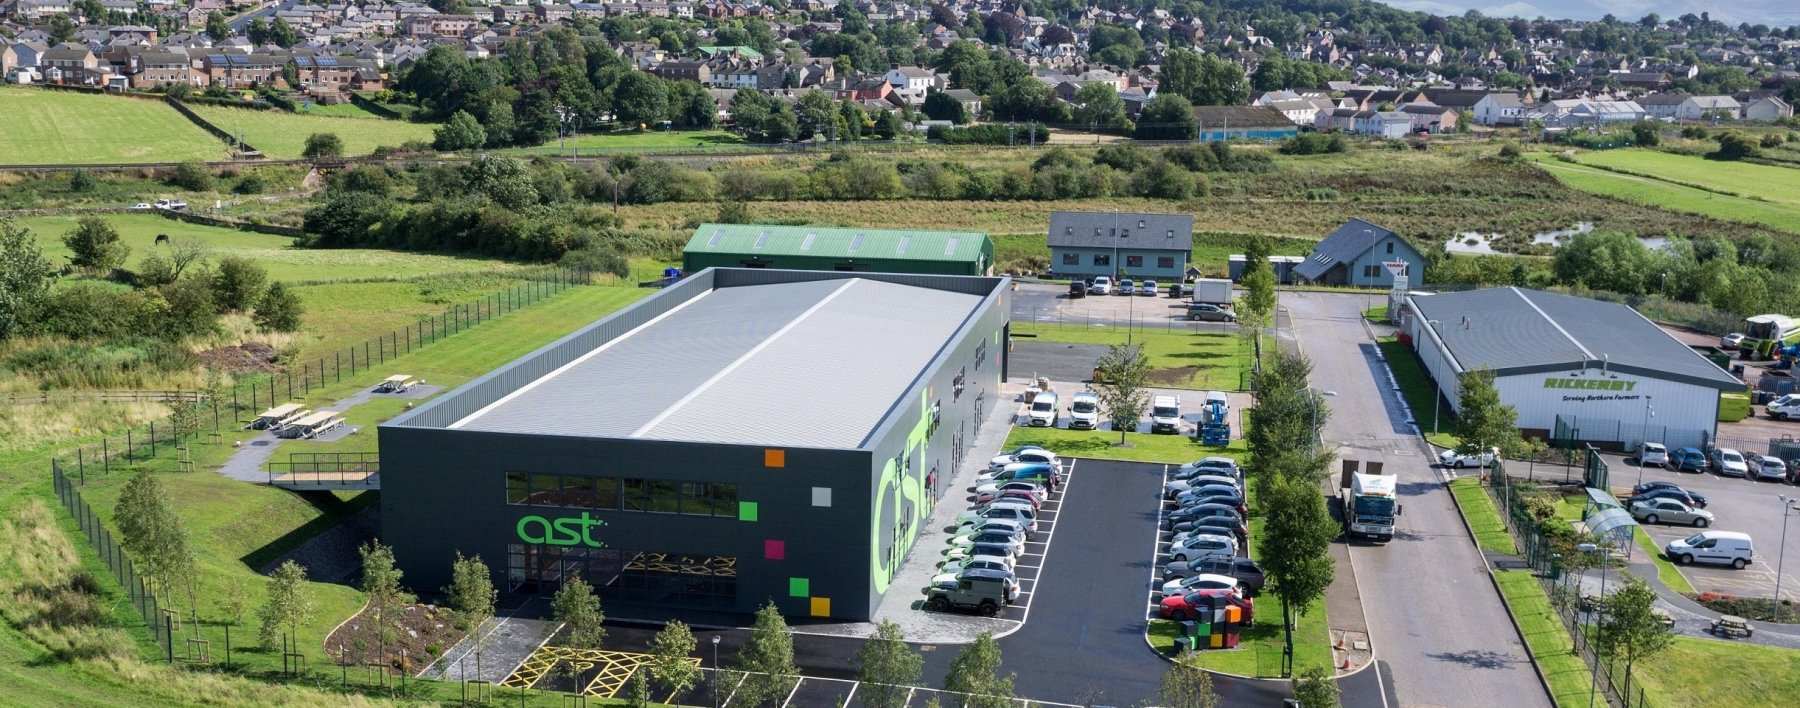 Ast Signs new purpose built head office